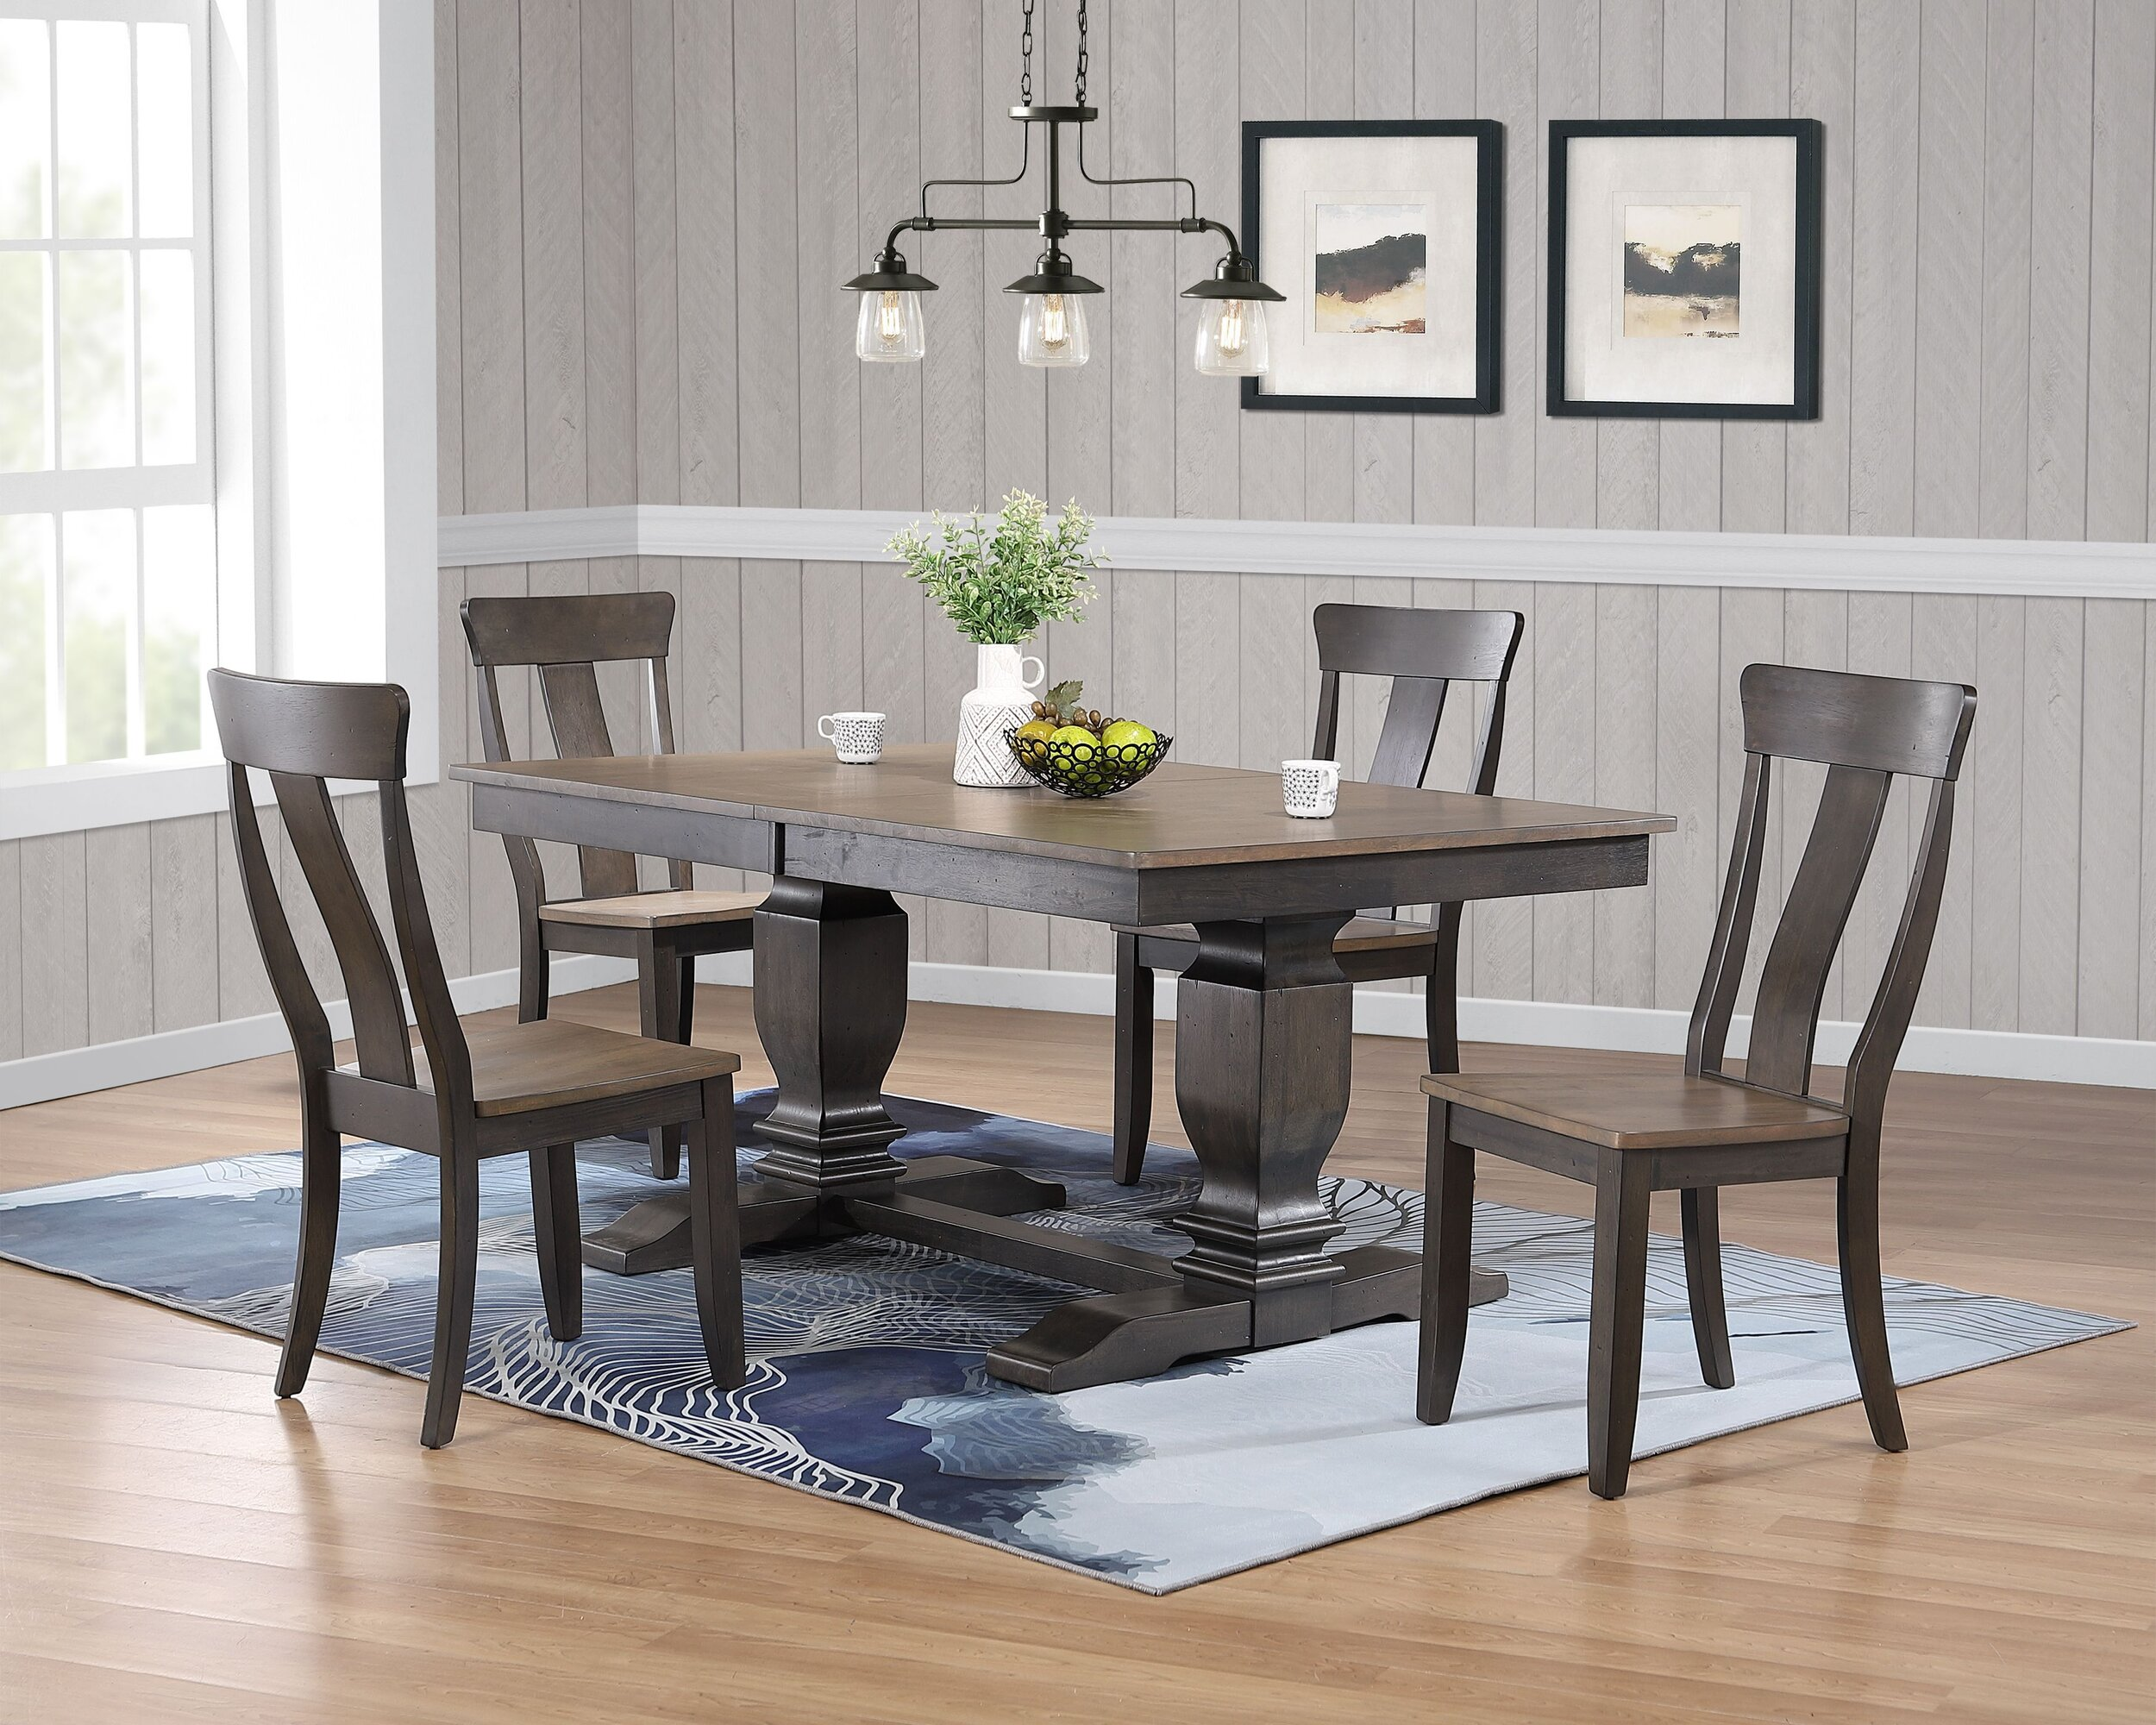 """42""""x64""""x82"""" Double Transitional Pedestal In Antique Grey Stone Black Stone Panel Back 5-Piece Dining Set"""